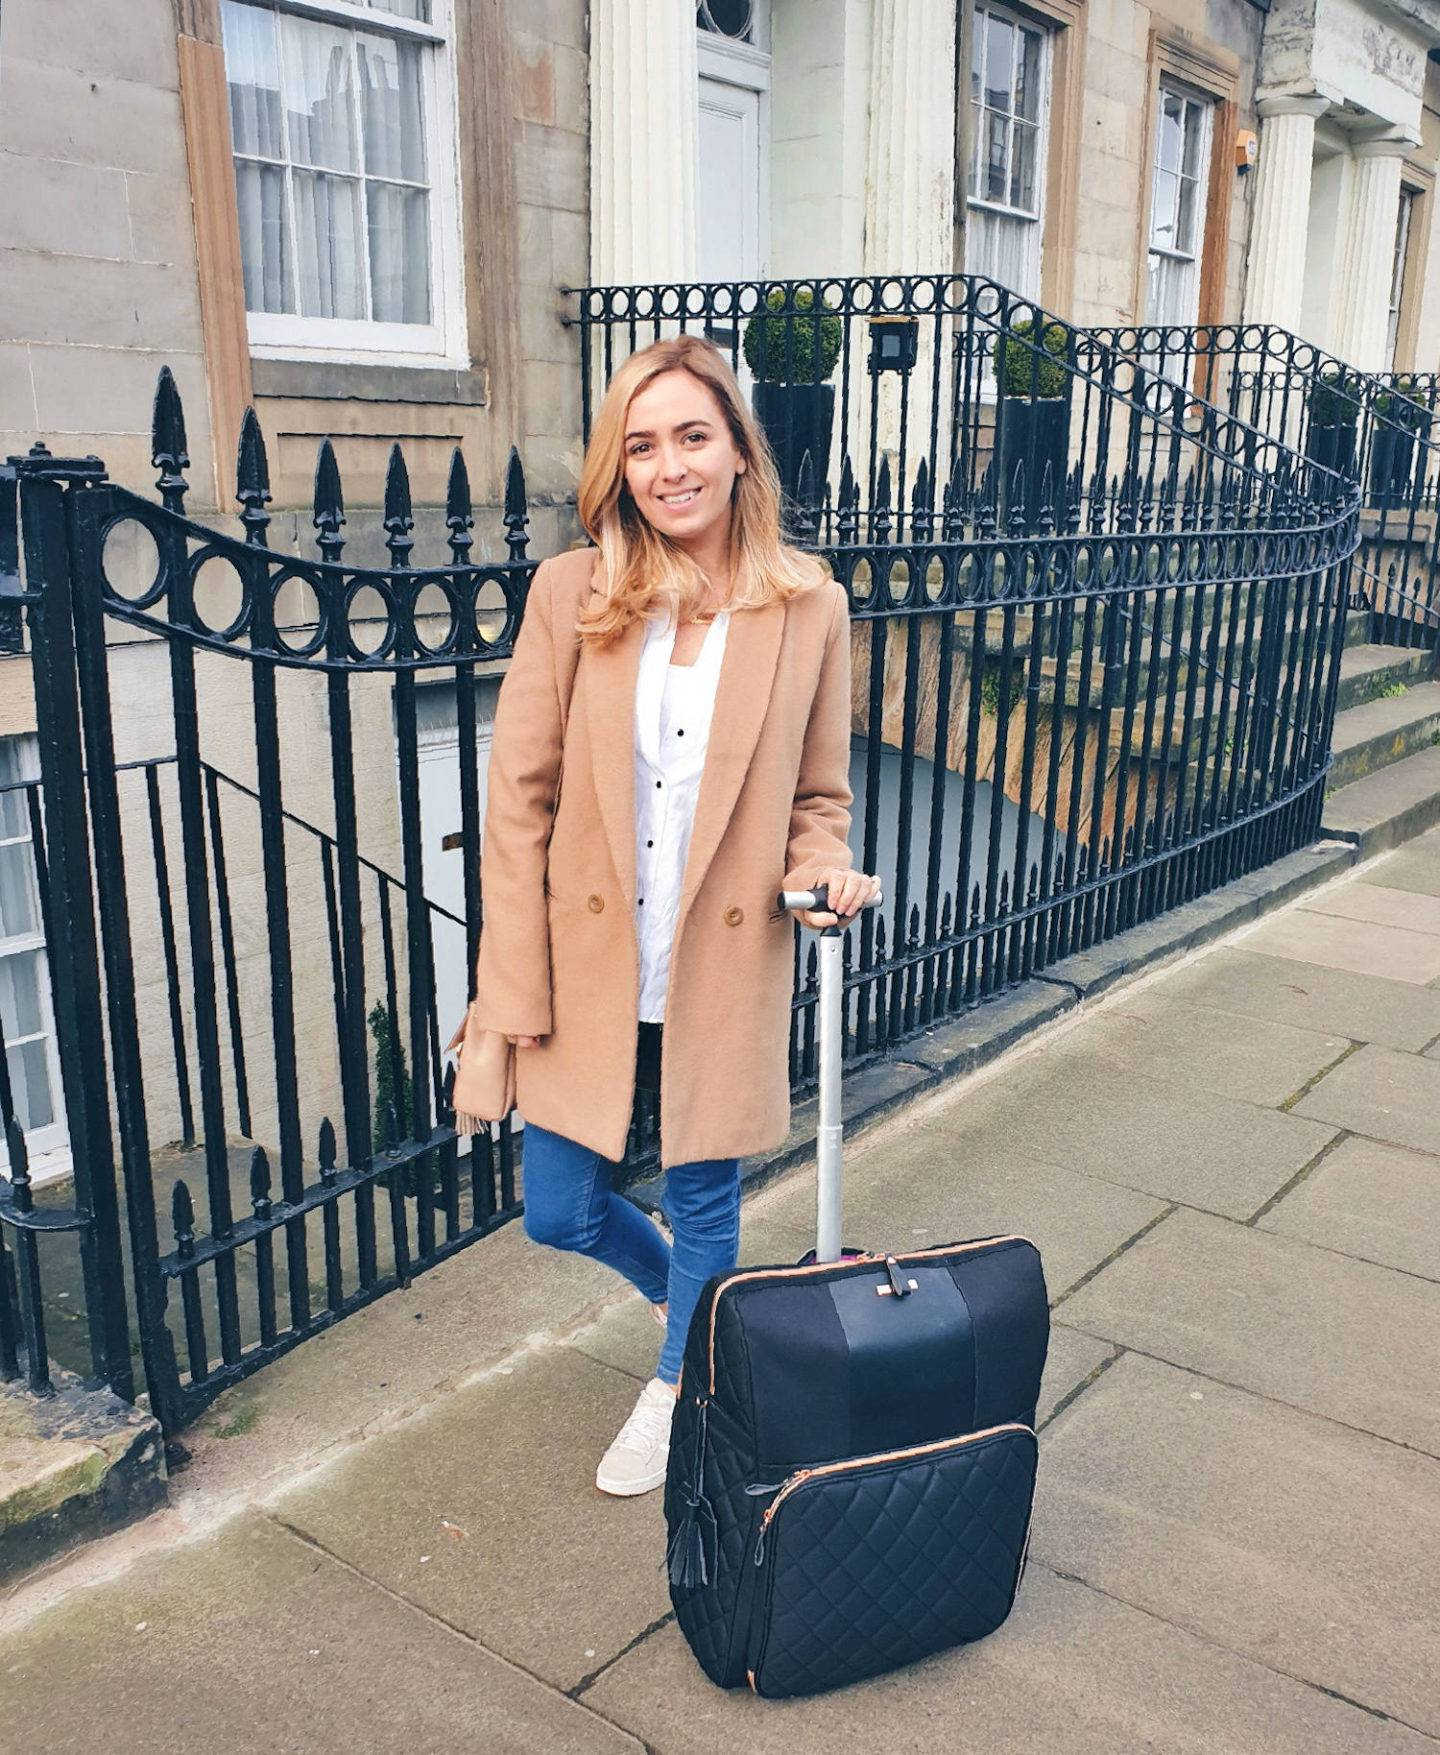 Travel Hack Pro Cabin Bag Review The Most Stylish Women S